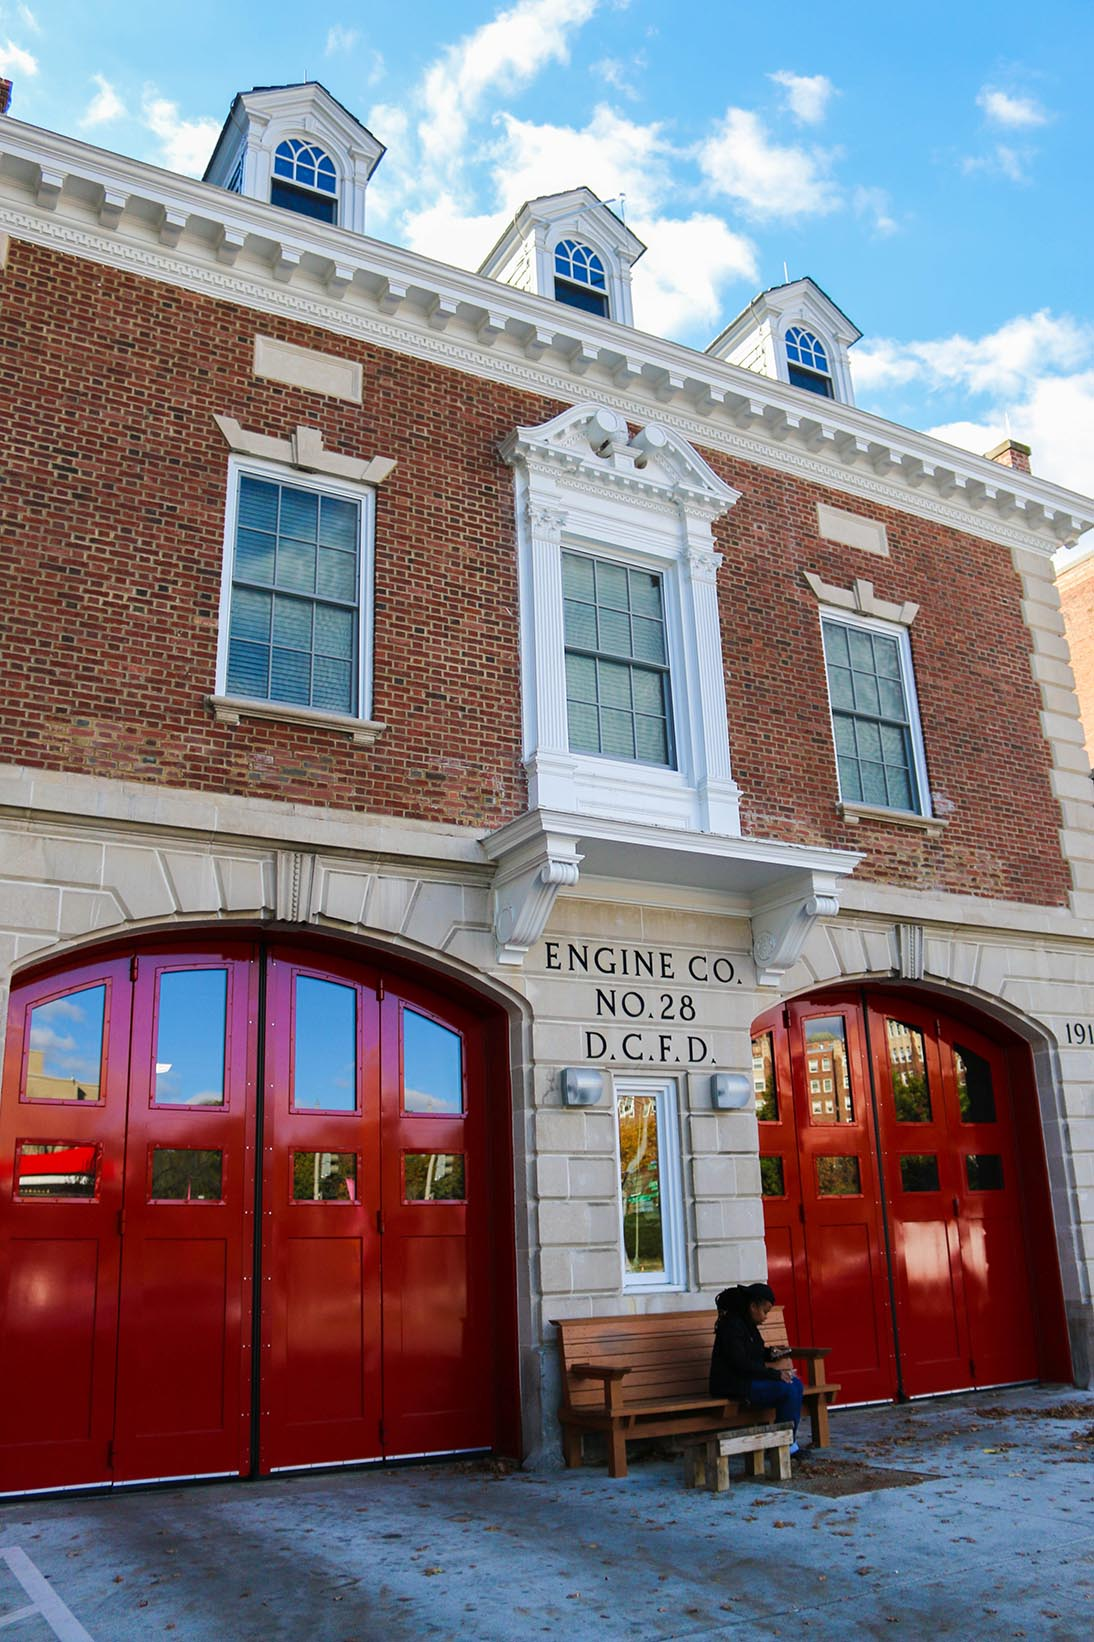 Fire station in Cleveland Park, Washington, DC